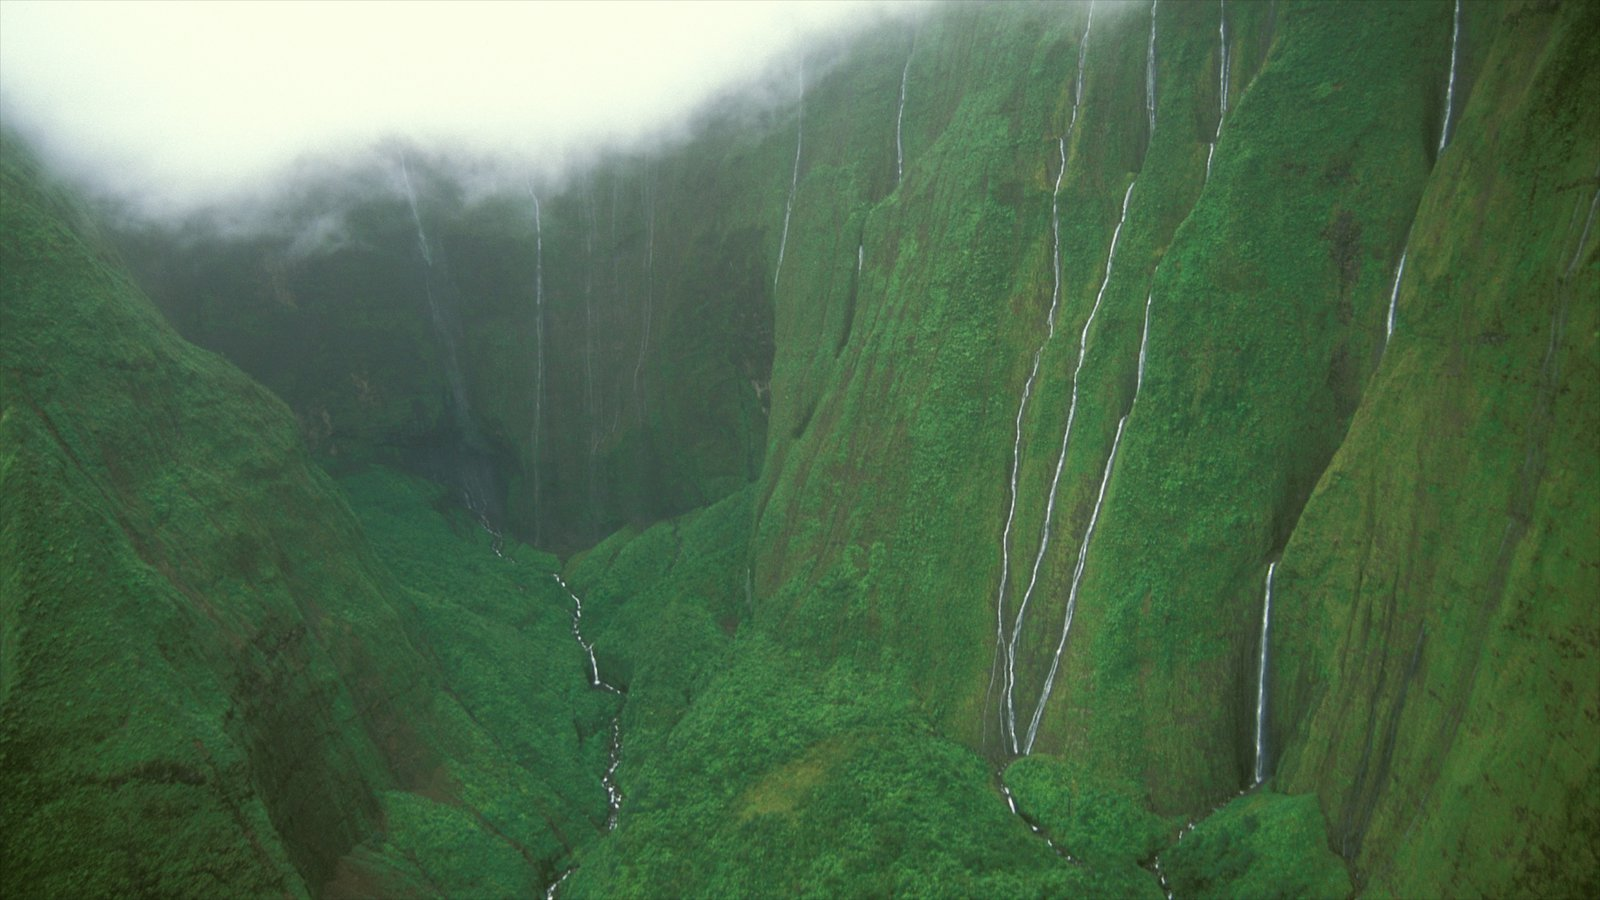 Waterfall Pictures: View Images of Hawaii